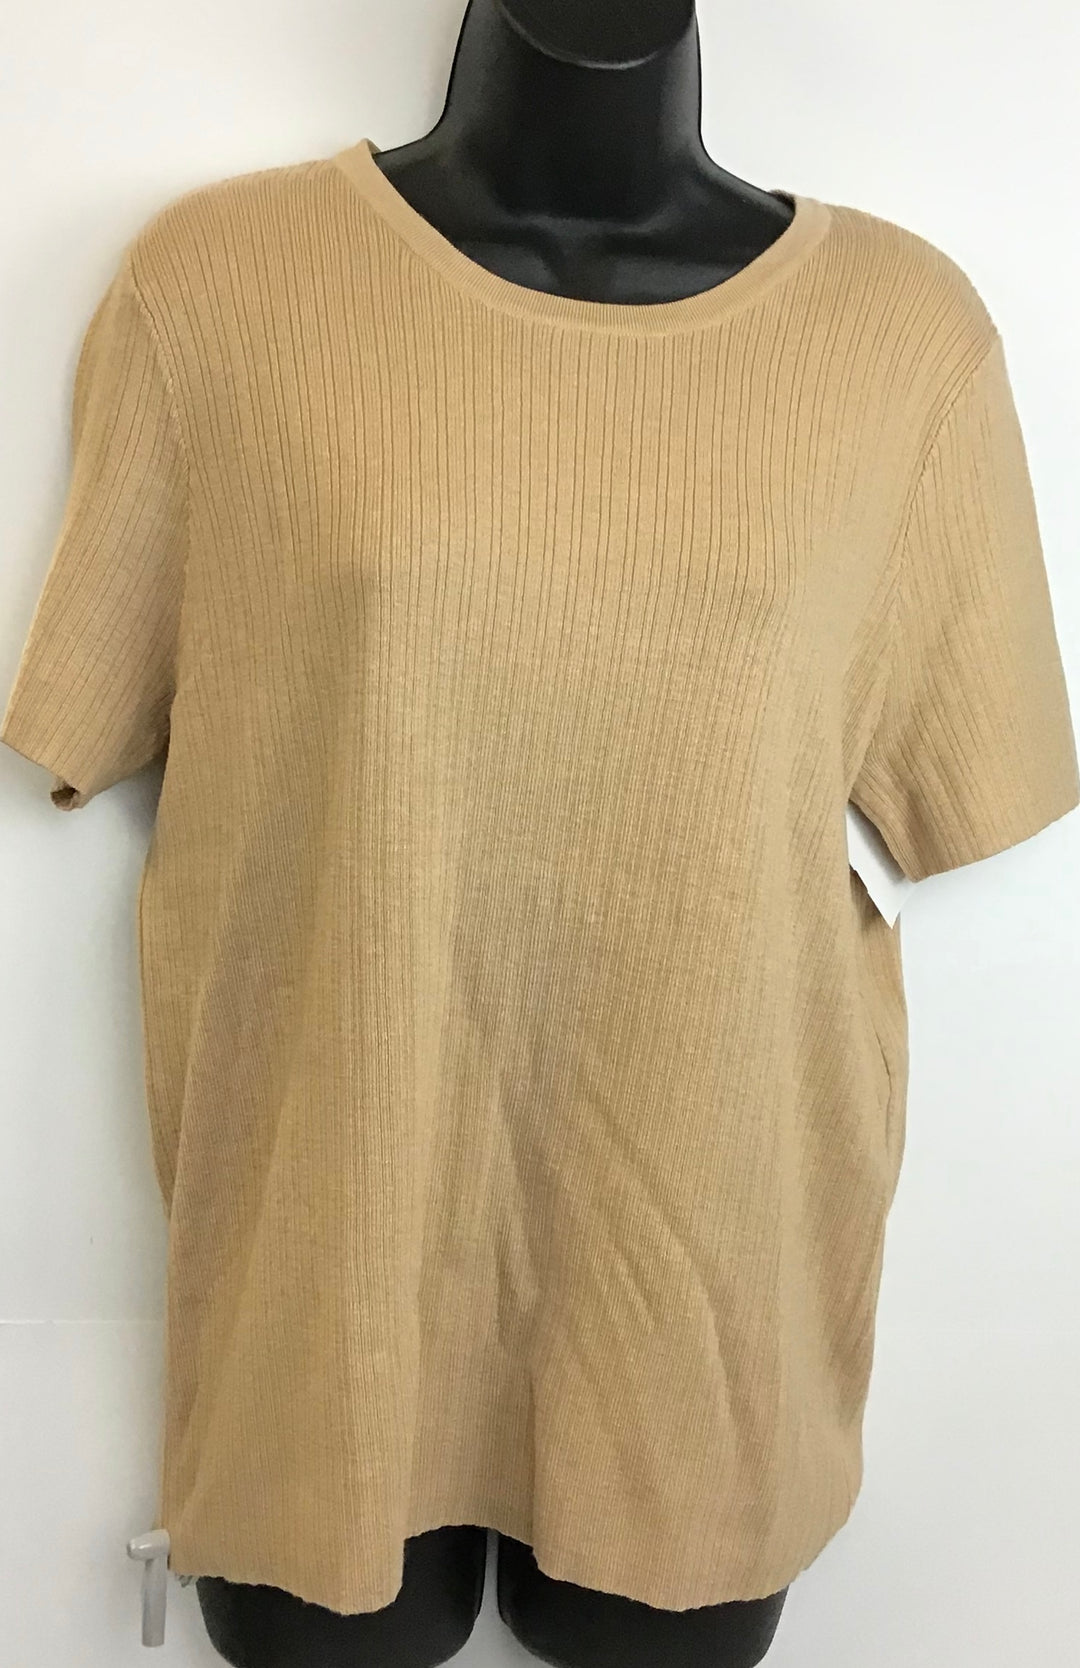 Primary Photo - BRAND: A NEW DAY <BR>STYLE: TOP SHORT SLEEVE <BR>COLOR: CAMEL <BR>SIZE: XL <BR>SKU: 213-213143-4150